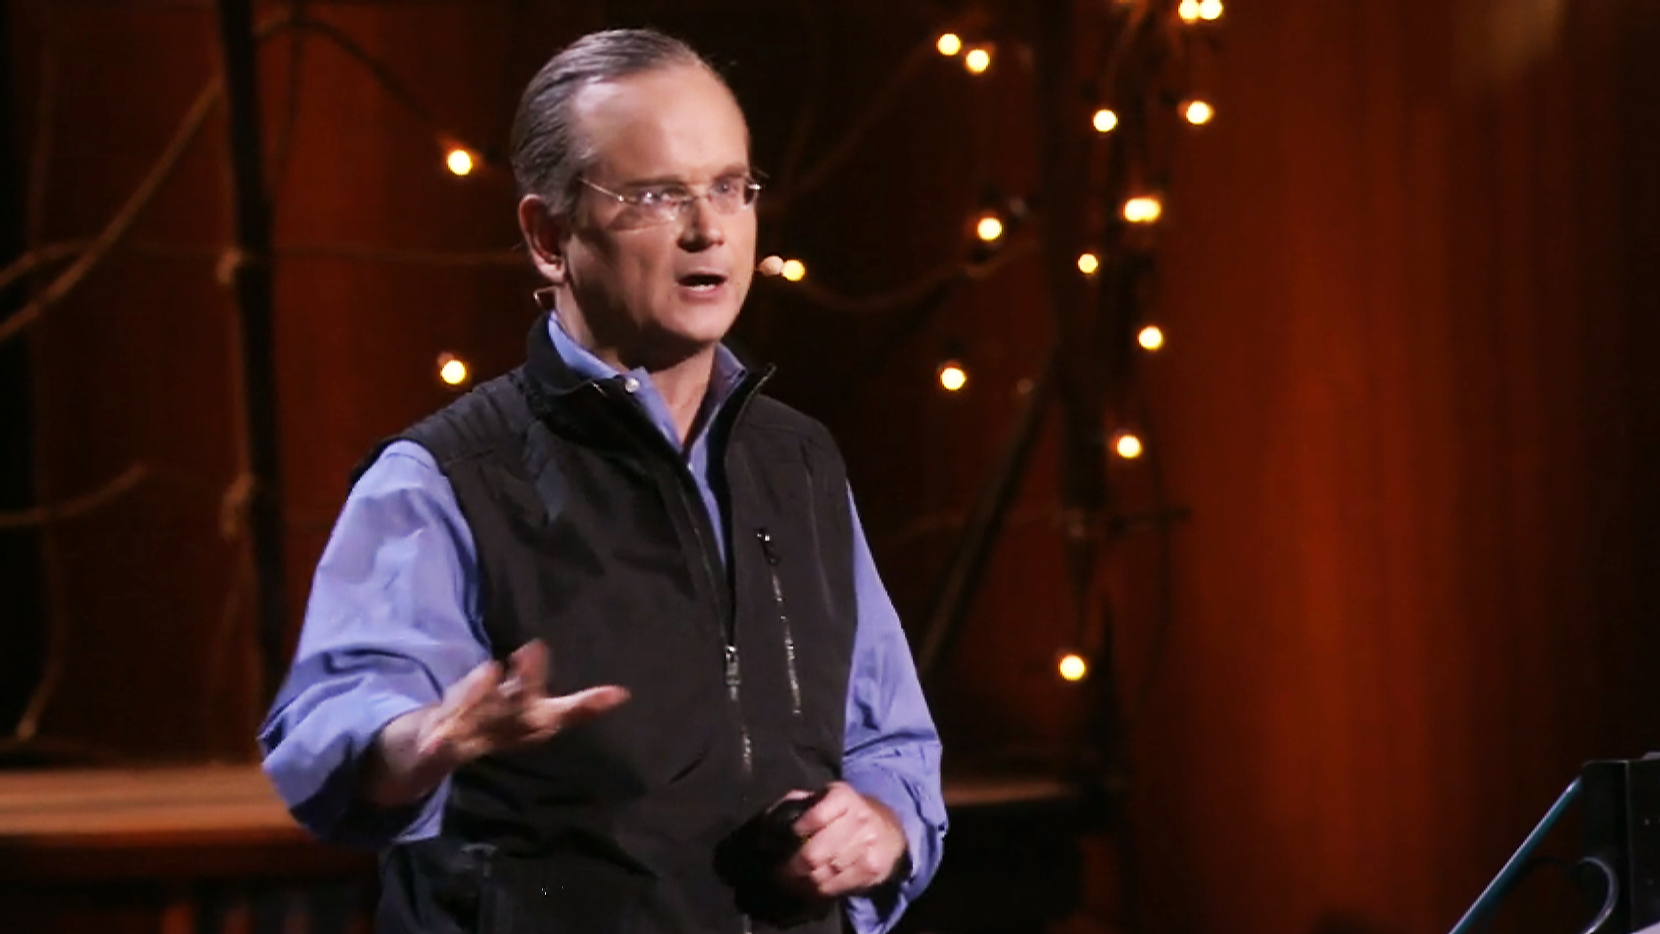 Lawrence Lessig TED talk: We the People, and the Republic we must reclaim